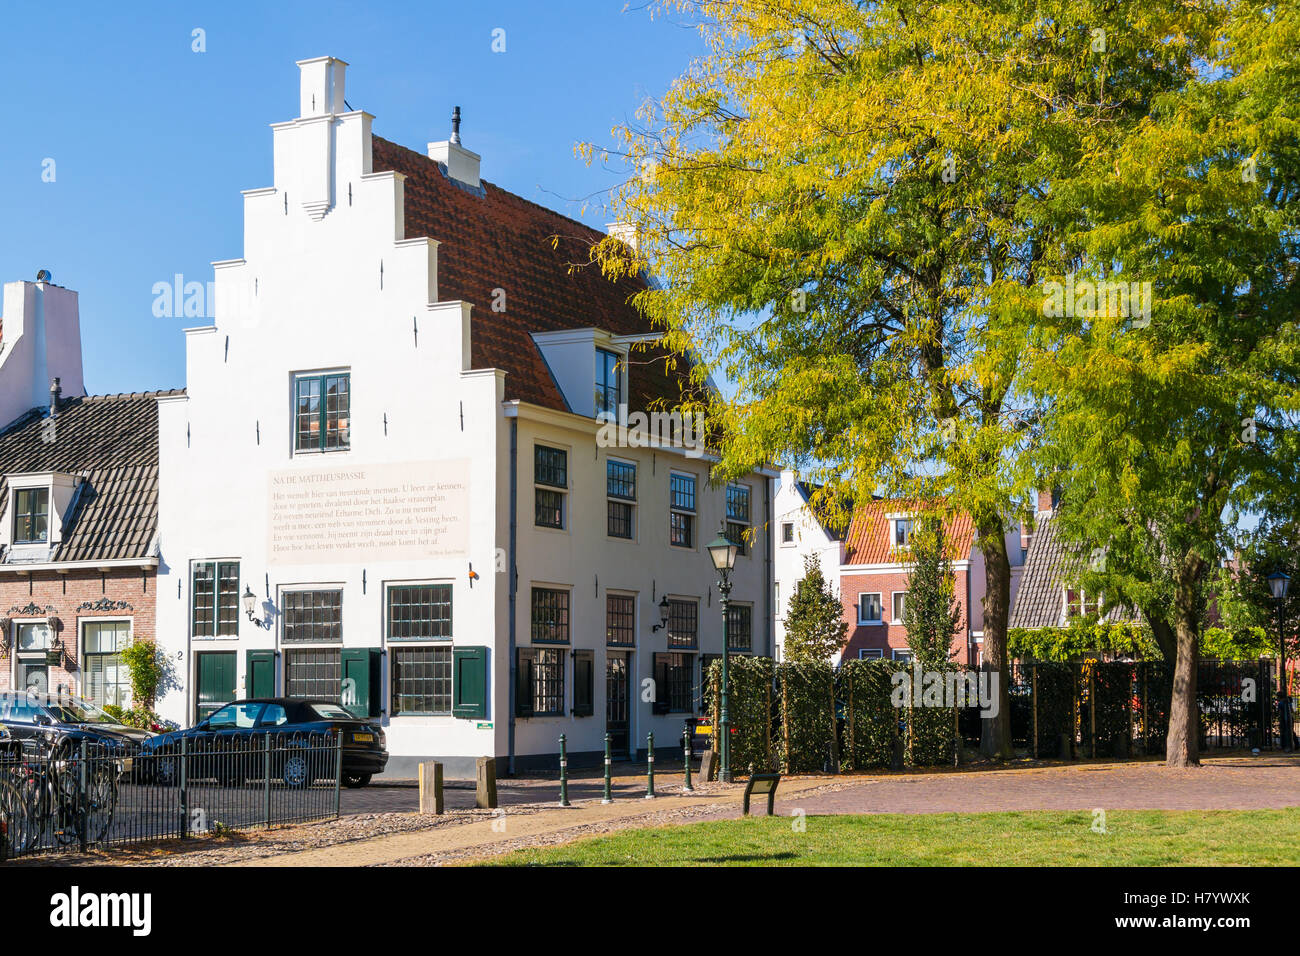 Historic white house with stepped gable in old town of Naarden, North Holland, Netherlands - Stock Image